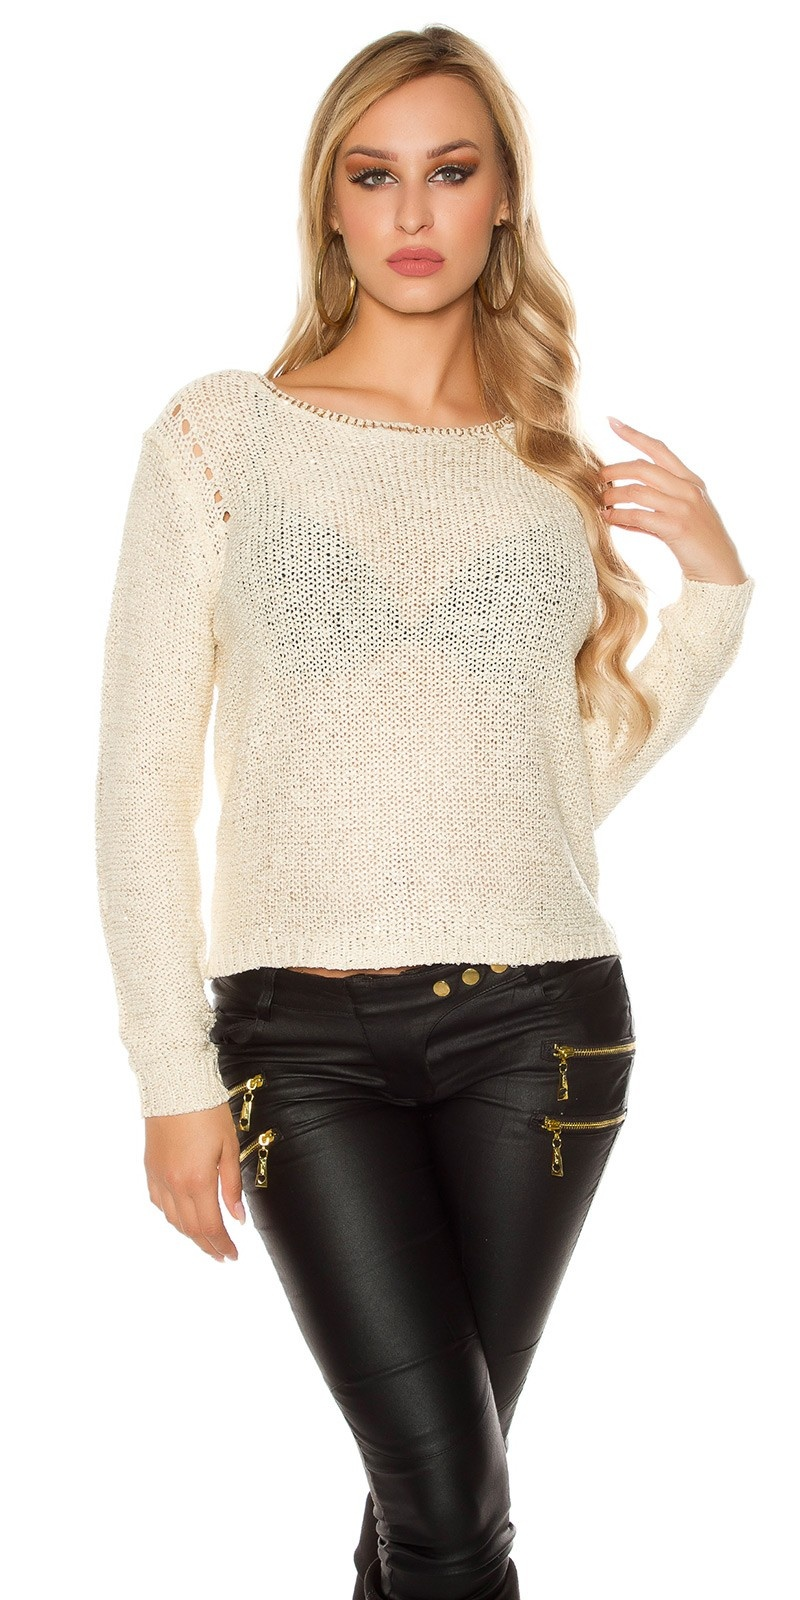 Sexy coarse cord sweater-trui met pailletten cremewit